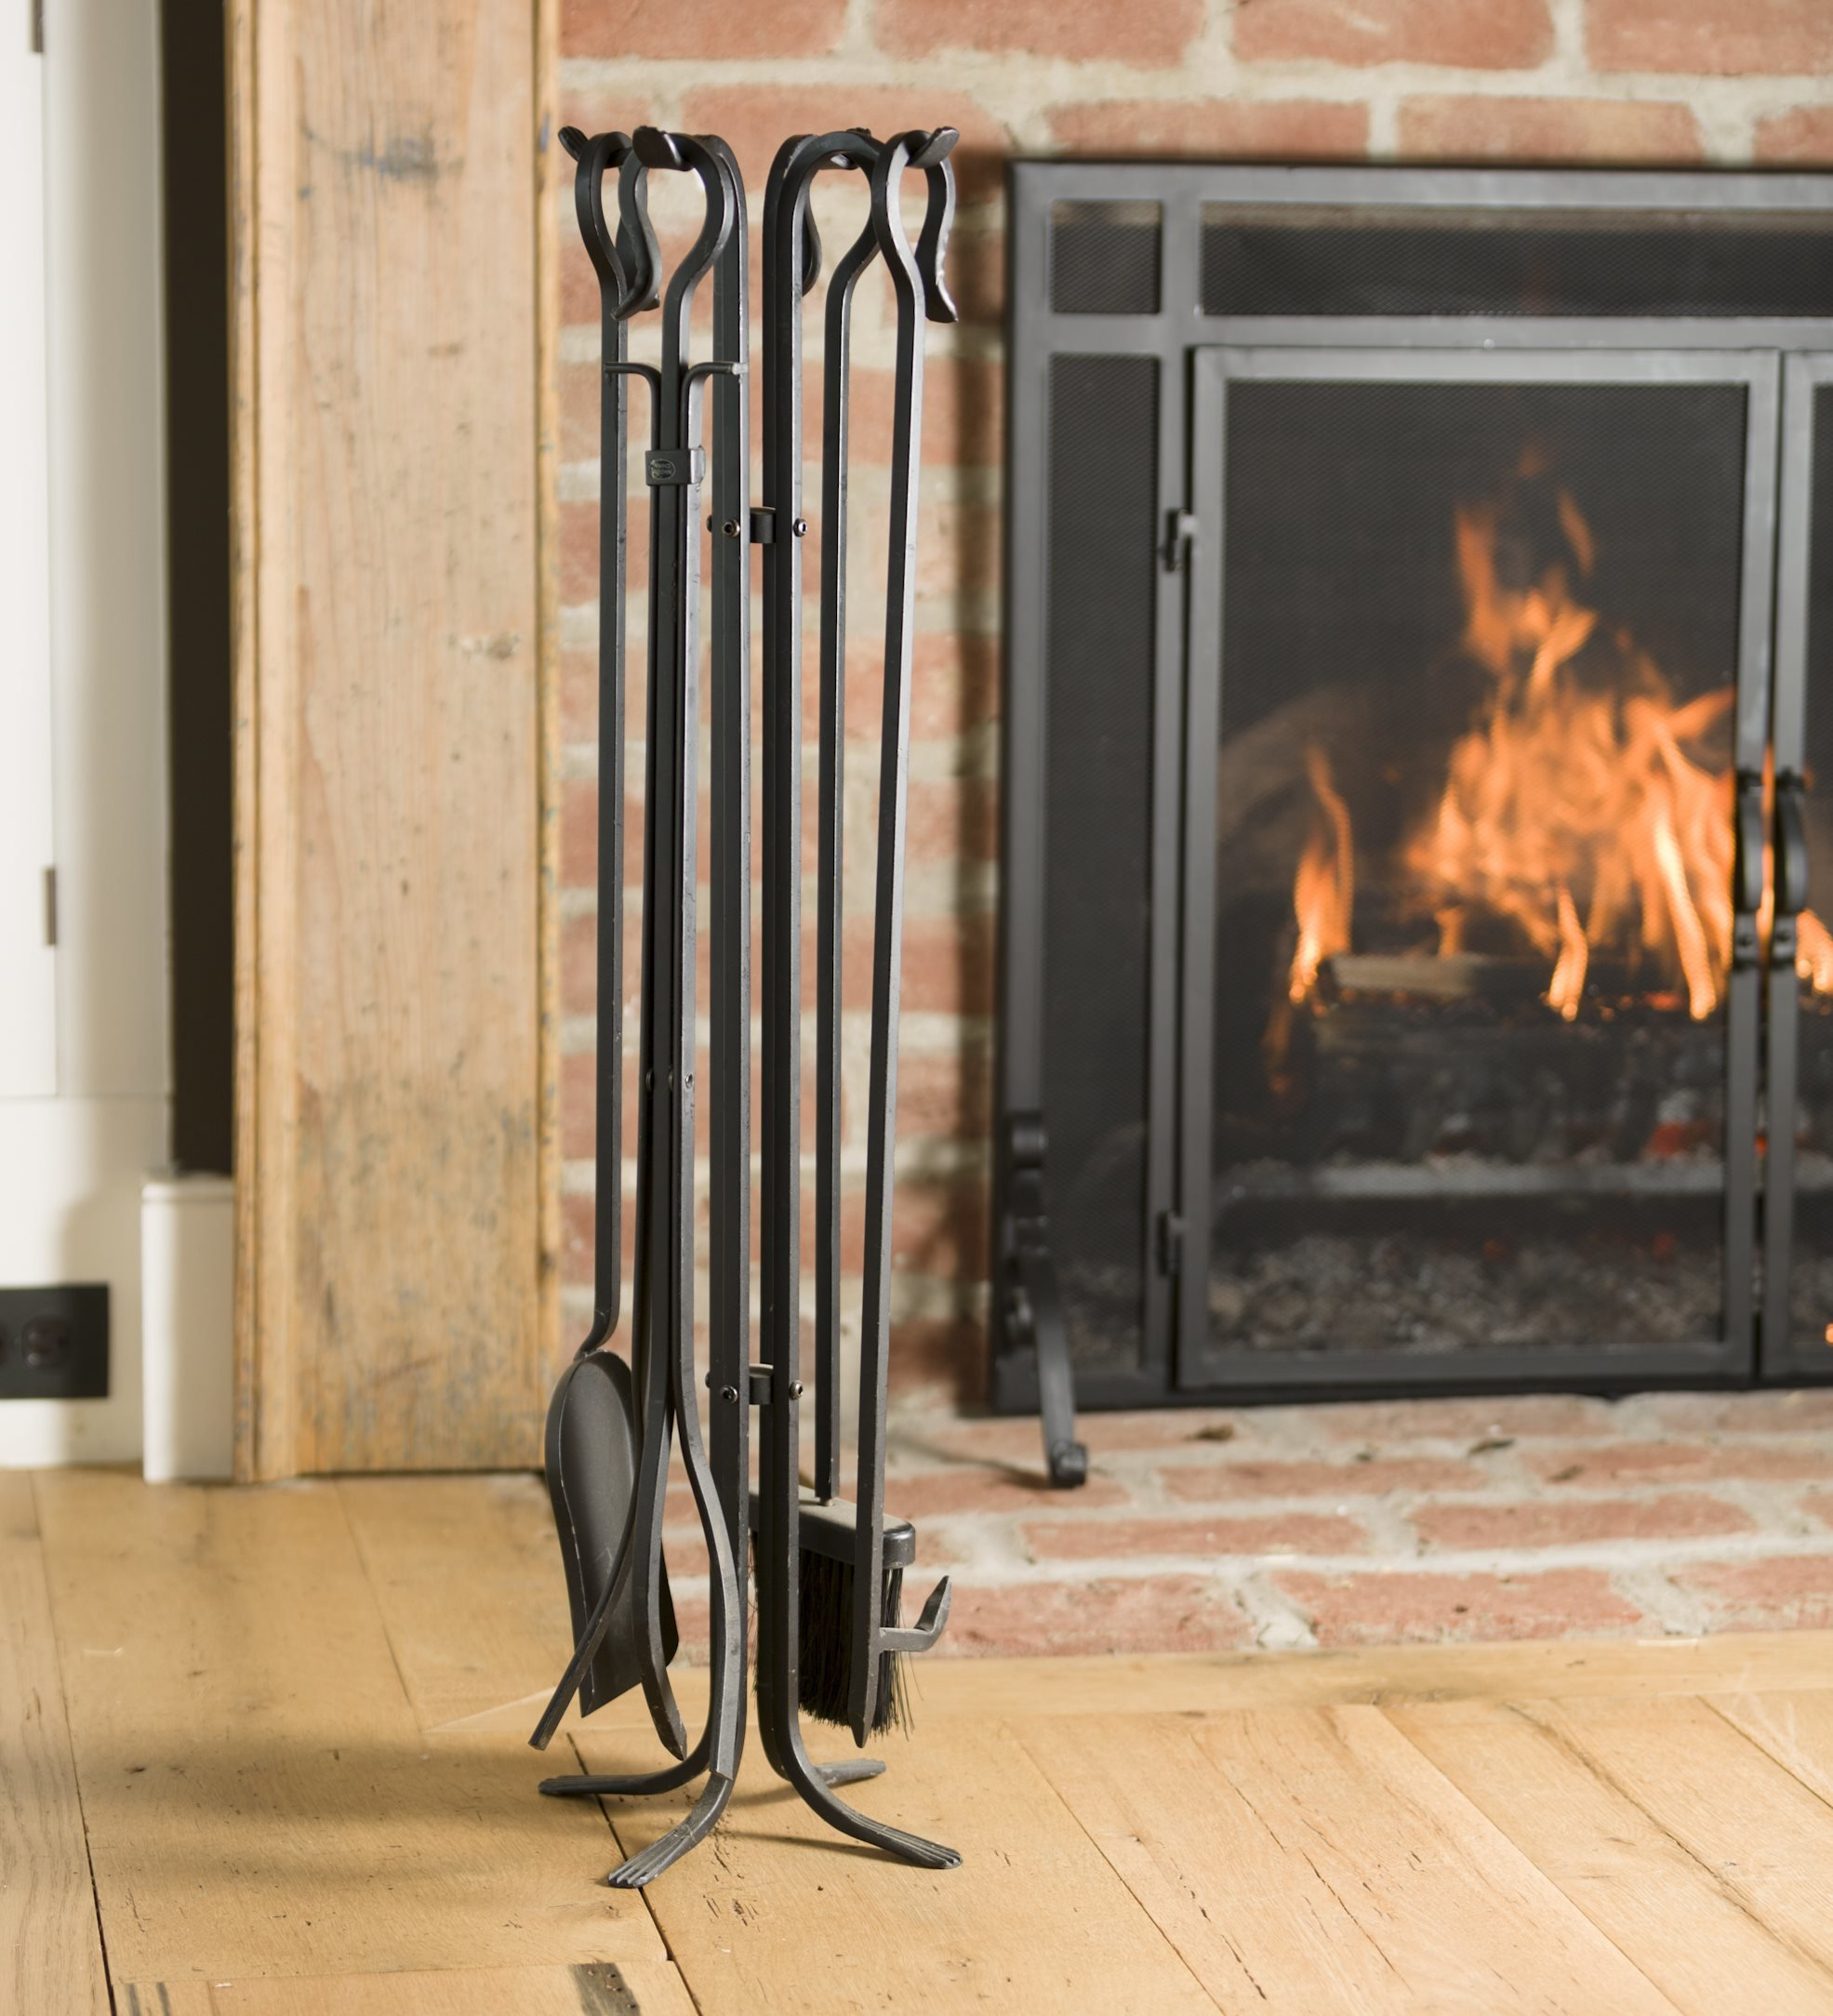 Plow & Hearth Tall 5 Piece Hand Forged Iron Fireplace Tool Set with Poker, Tongs, Shovel, Broom, and Stand 7-in Diam. x 32.5 H Black by Plow & Hearth